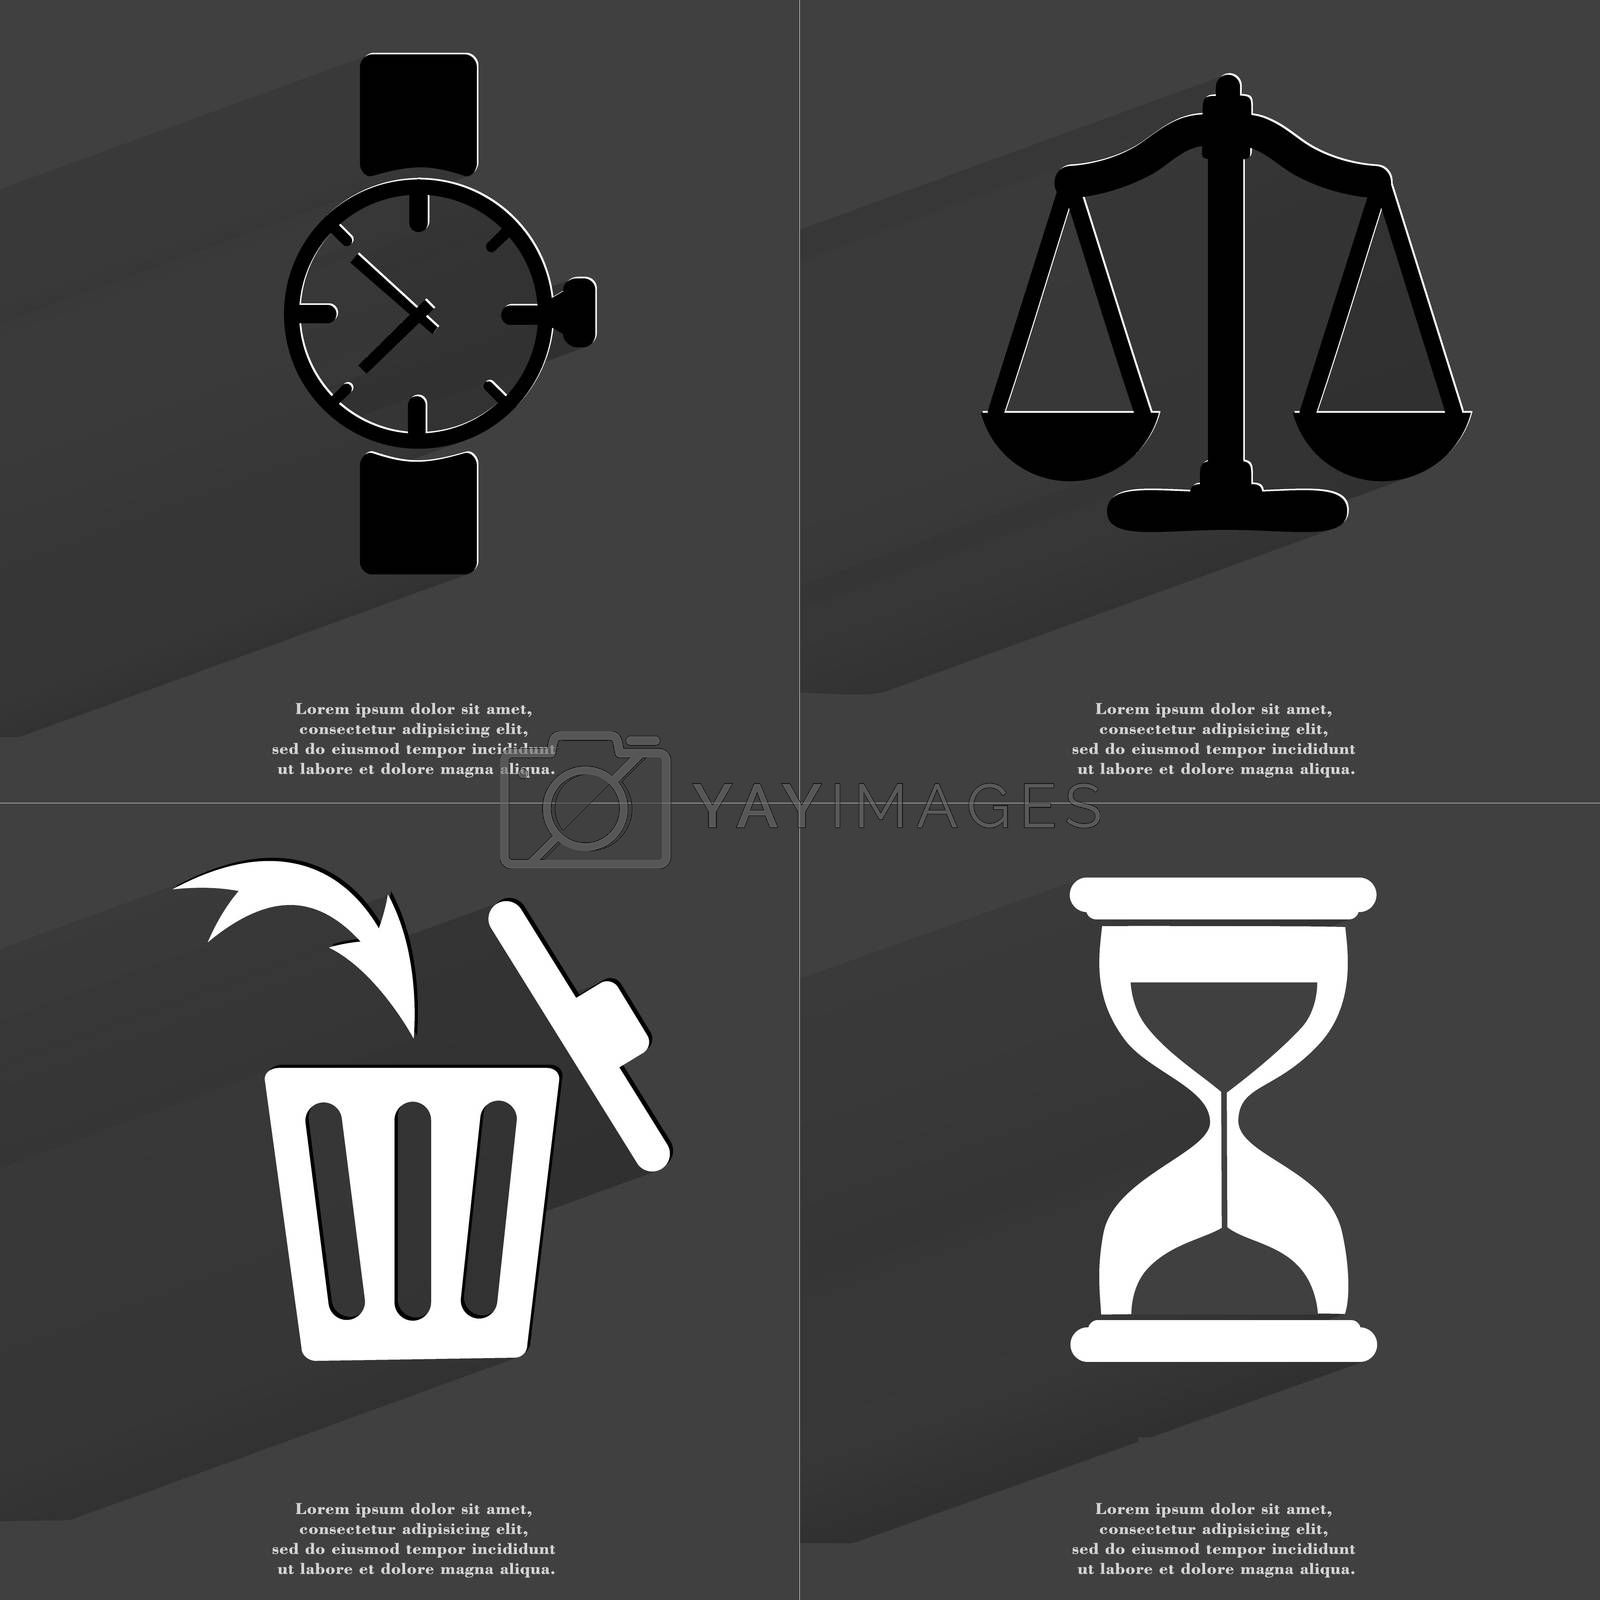 Royalty free image of Wrist watch, Scales, Trash can, Hourglass. Symbols with long shadow. Flat design by serhii_lohvyniuk